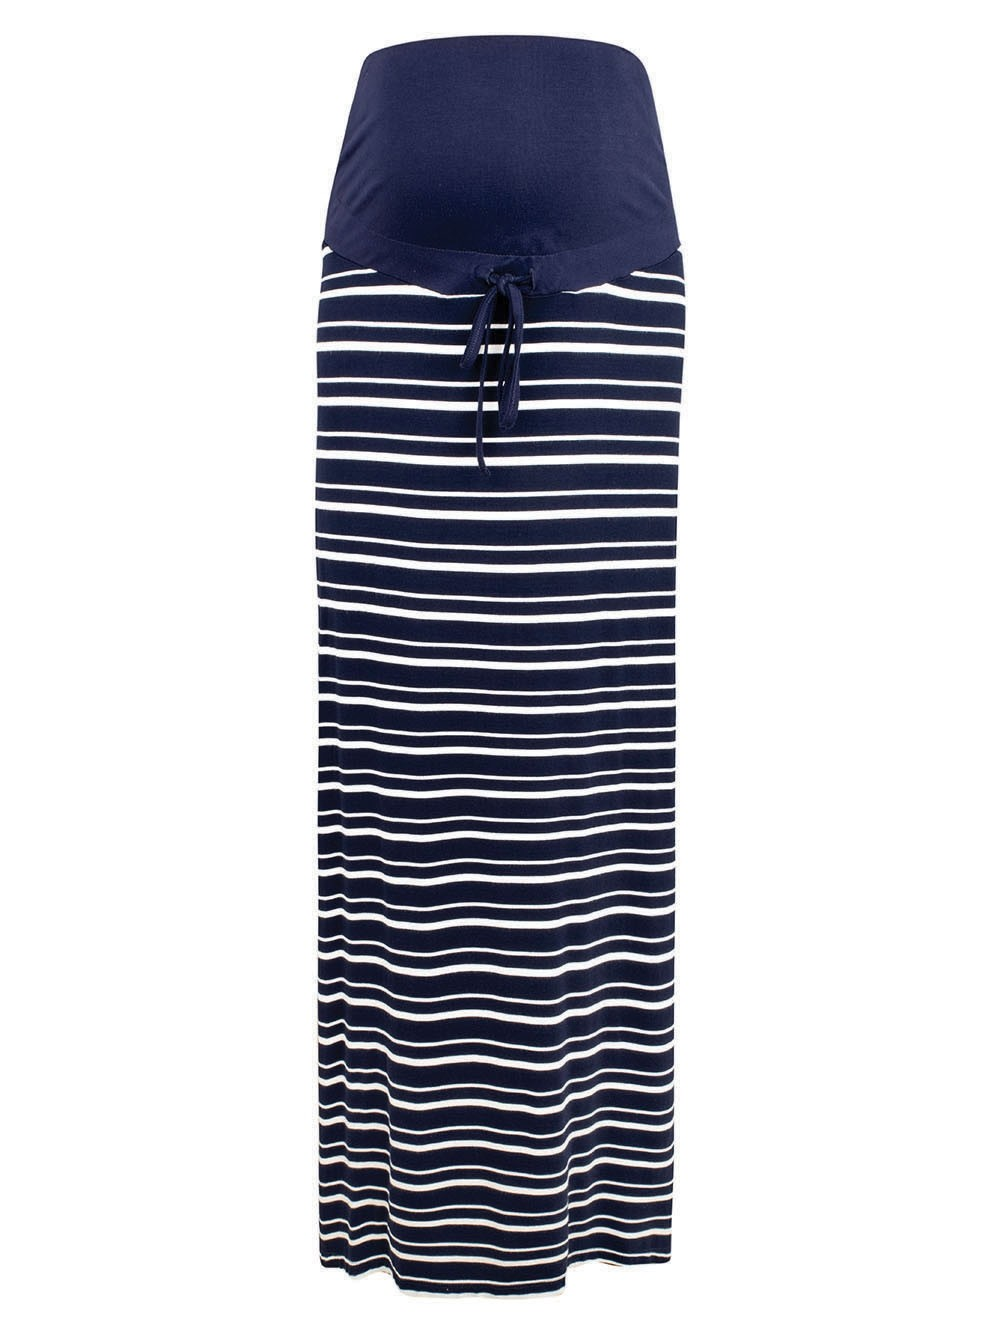 Navy Stripe Maternity Maxi Skirt